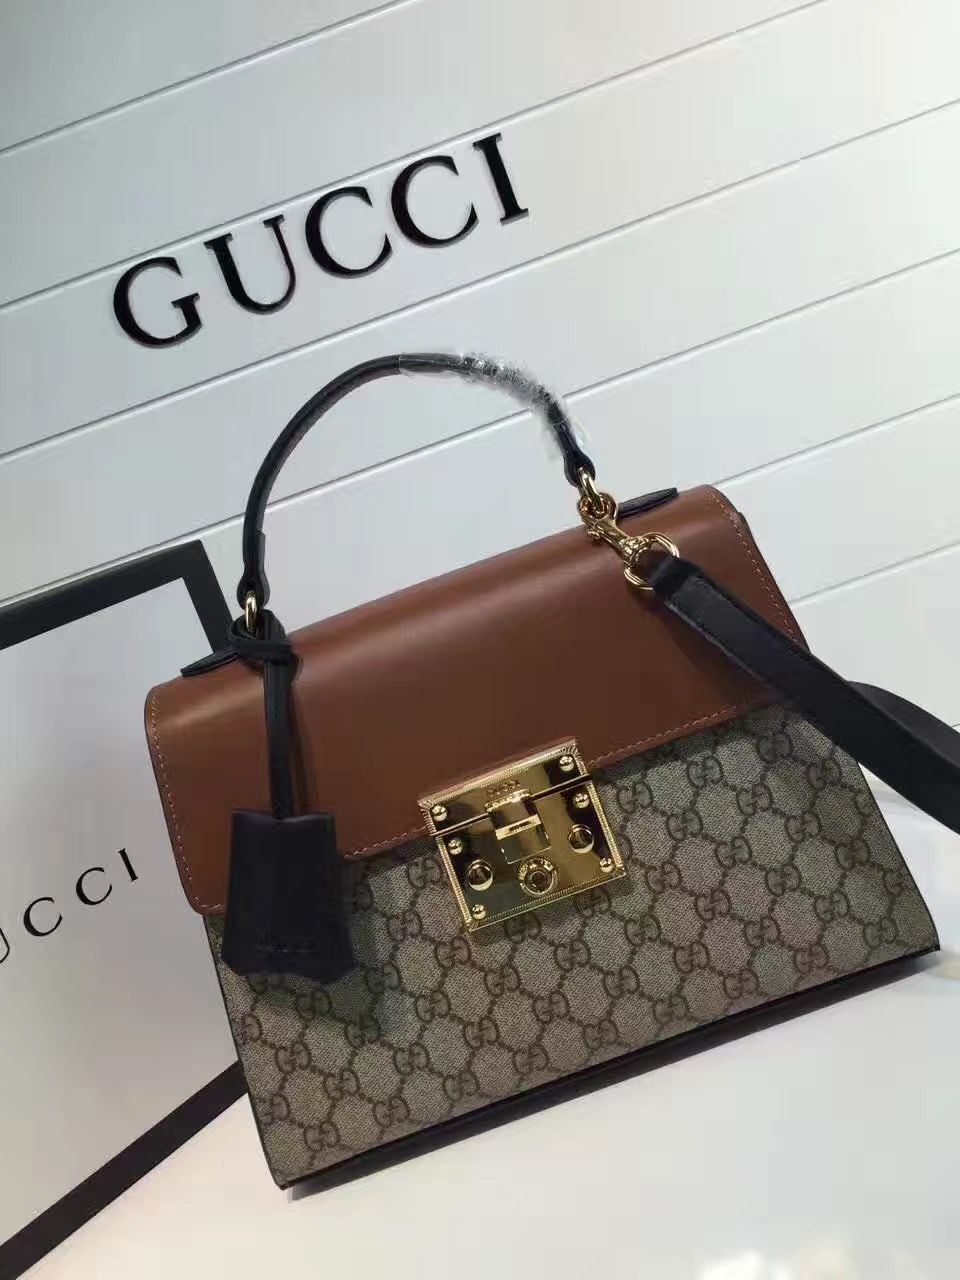 df1a93512 Gucci Padlock GG Supreme Top Handle Small Bag 453188 Brown 2016 ...